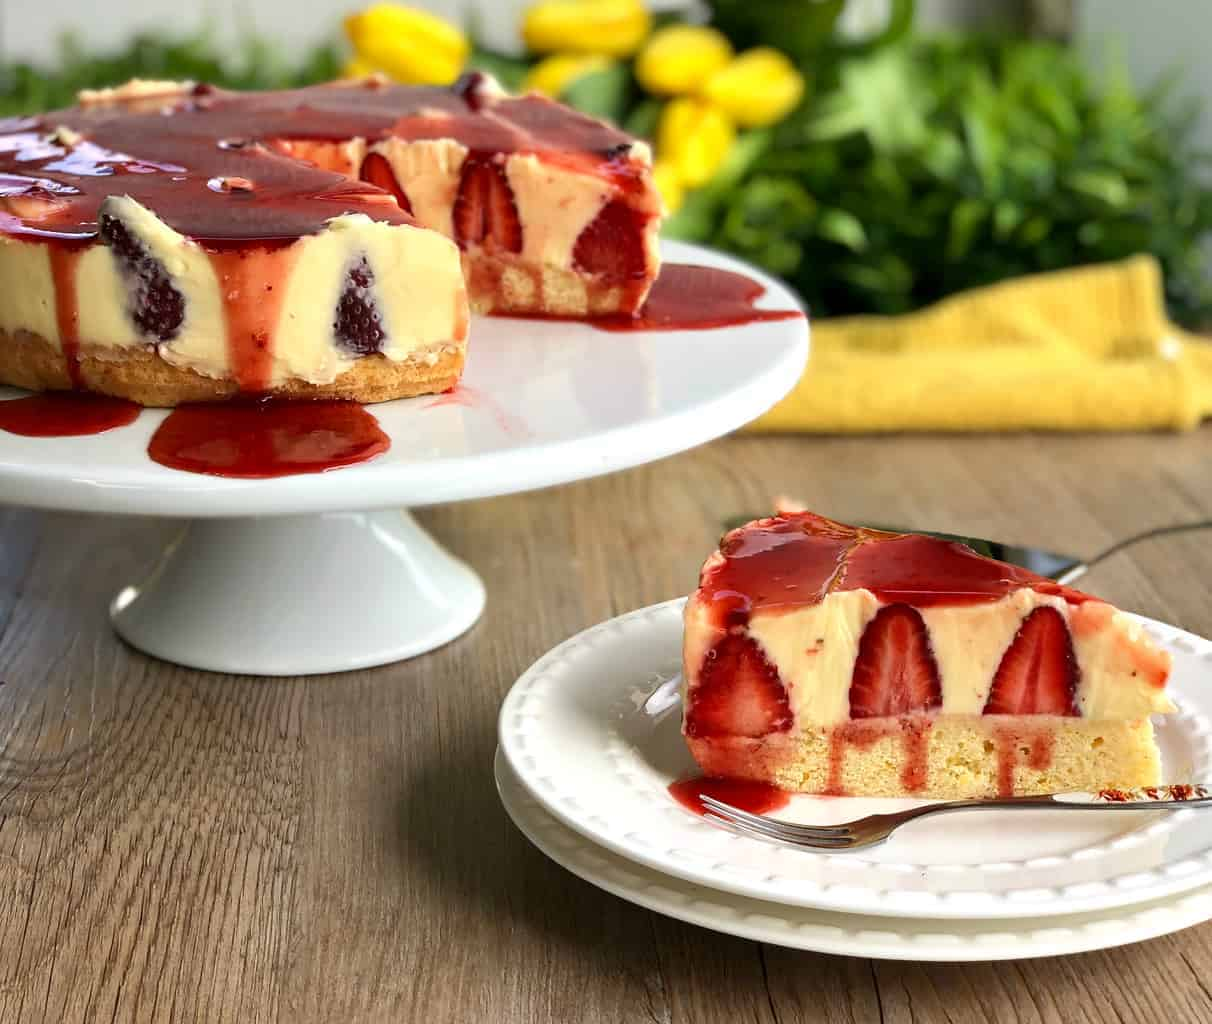 Slice of Strawberry Shortcake Cheesecake